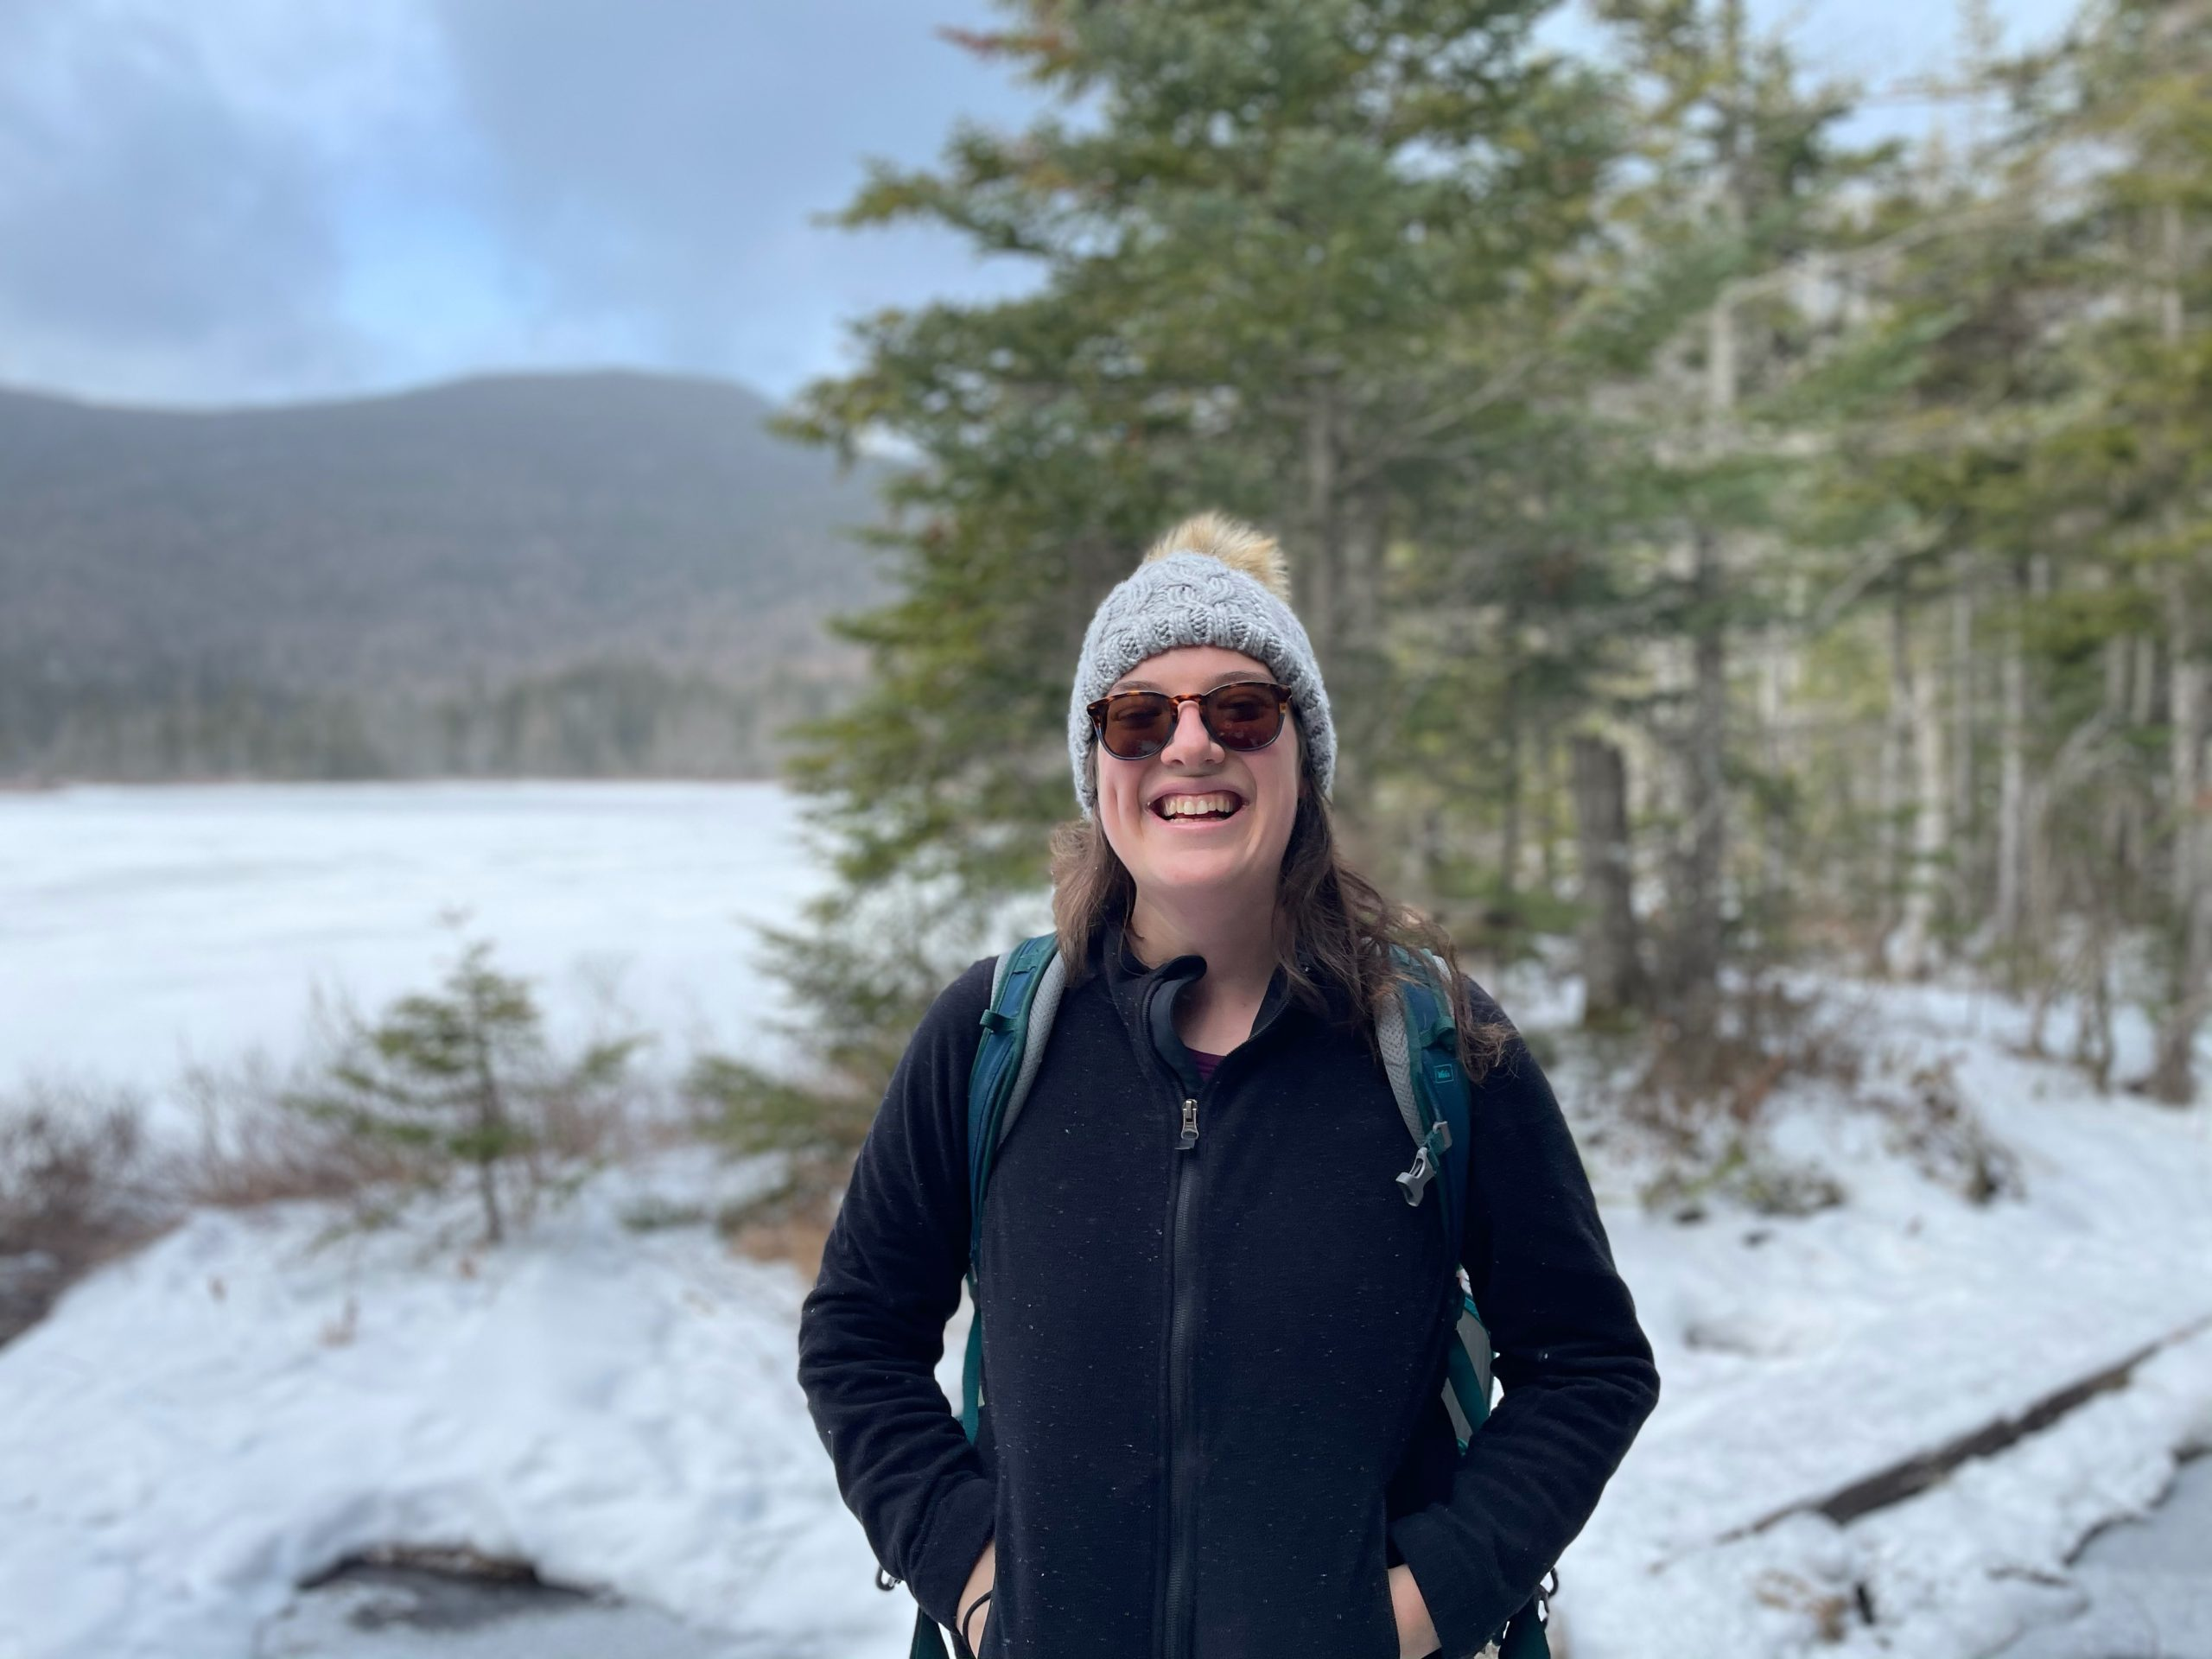 photo of Eviva Kahne standing outside where snow, trees, and a distant mountain can be seen